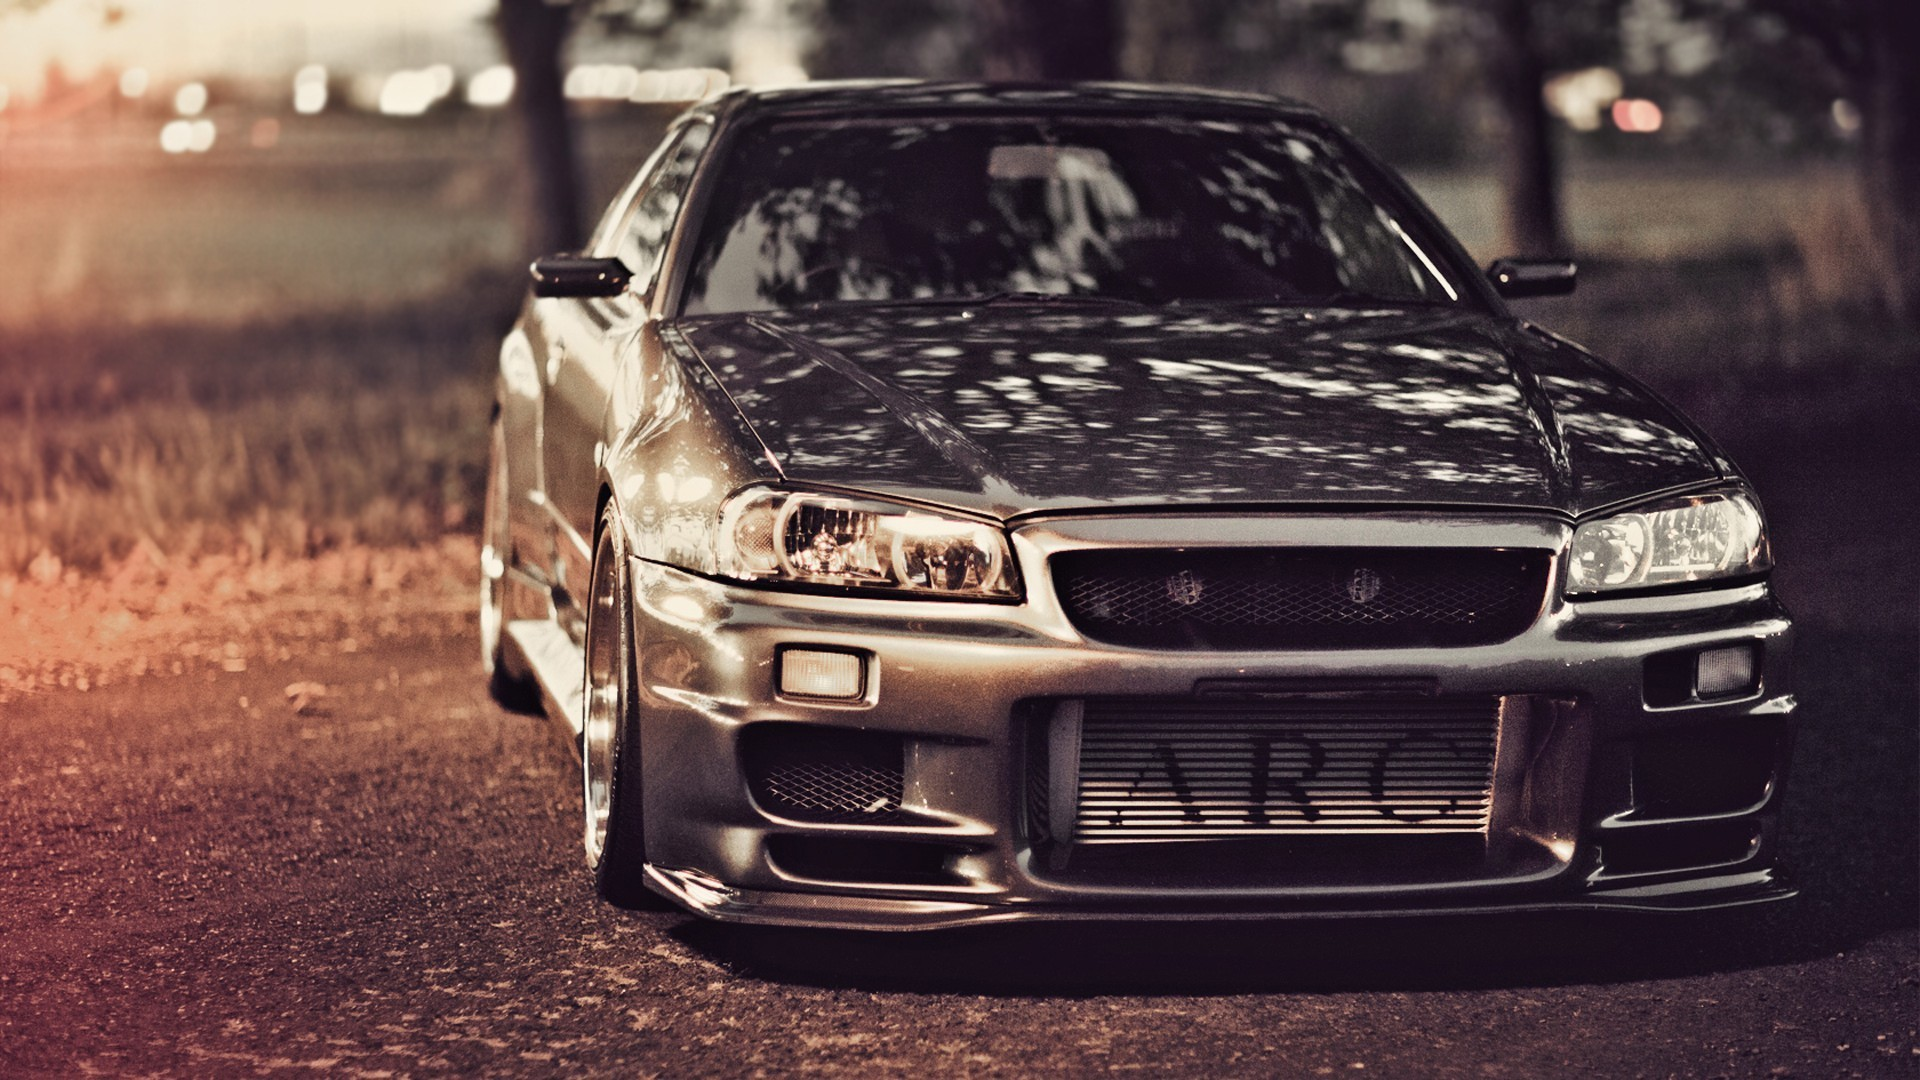 HD wallpapers jdm and widescreen backgrounds free JDM Wallpapers Wallpapers)